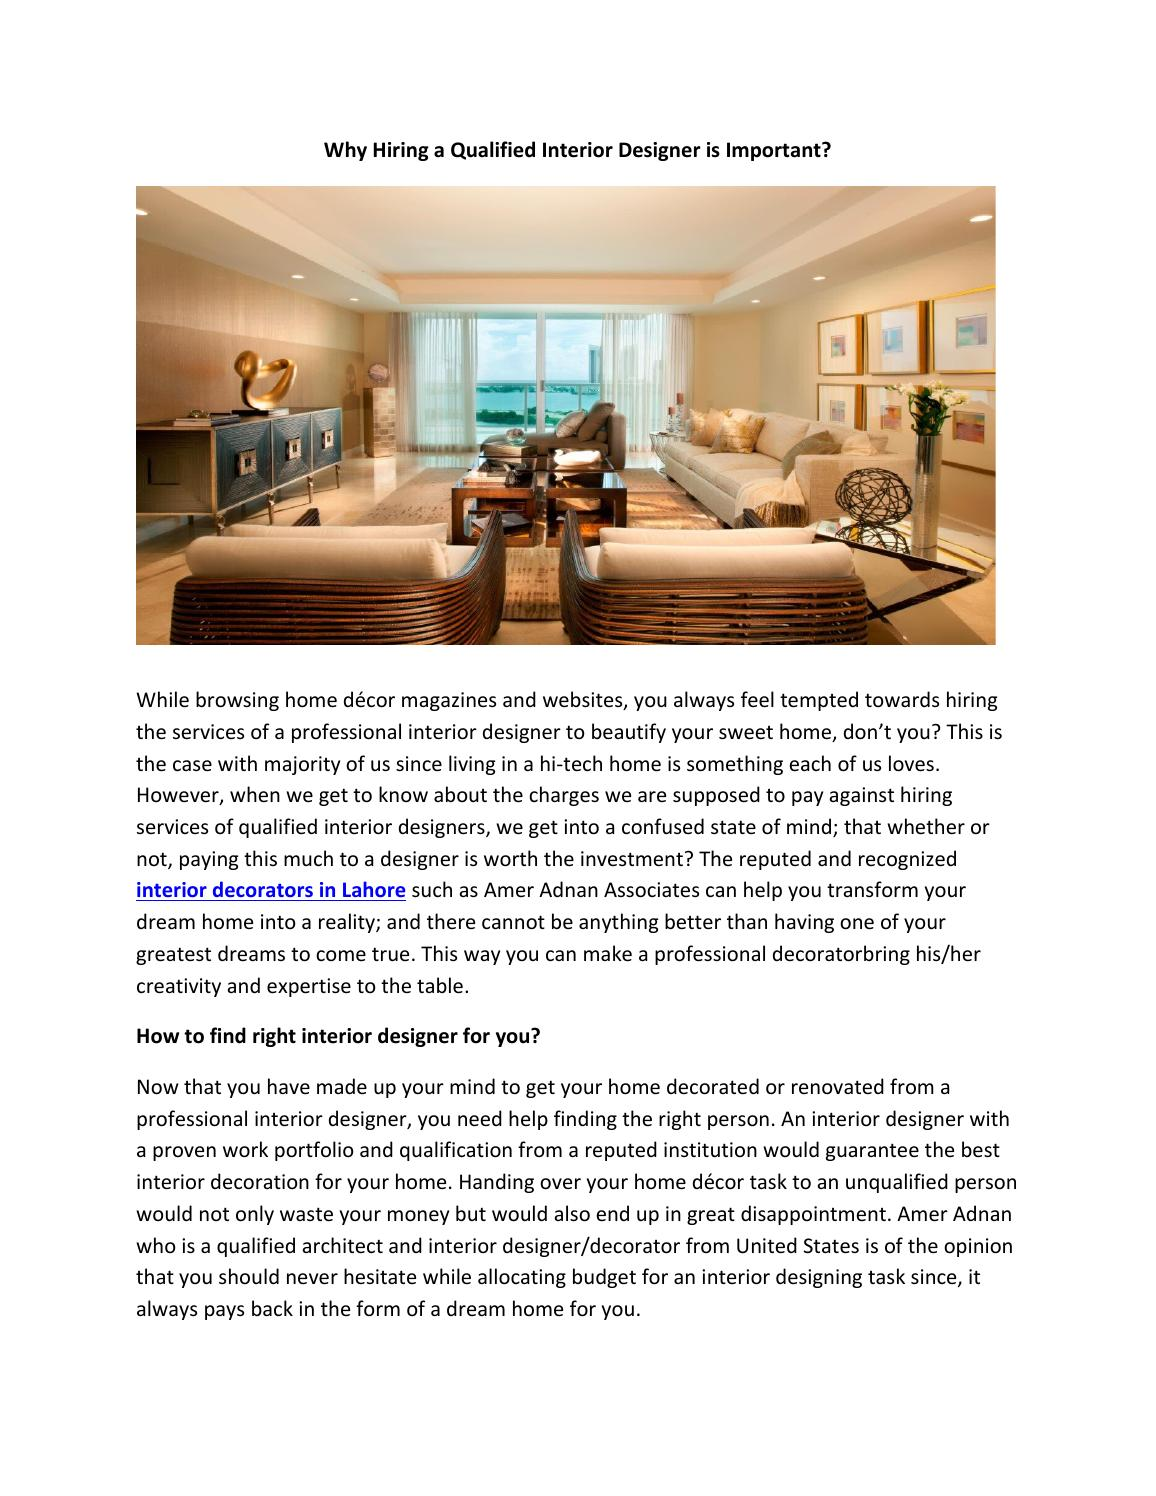 Why Interior Design Is Important College Paper Service